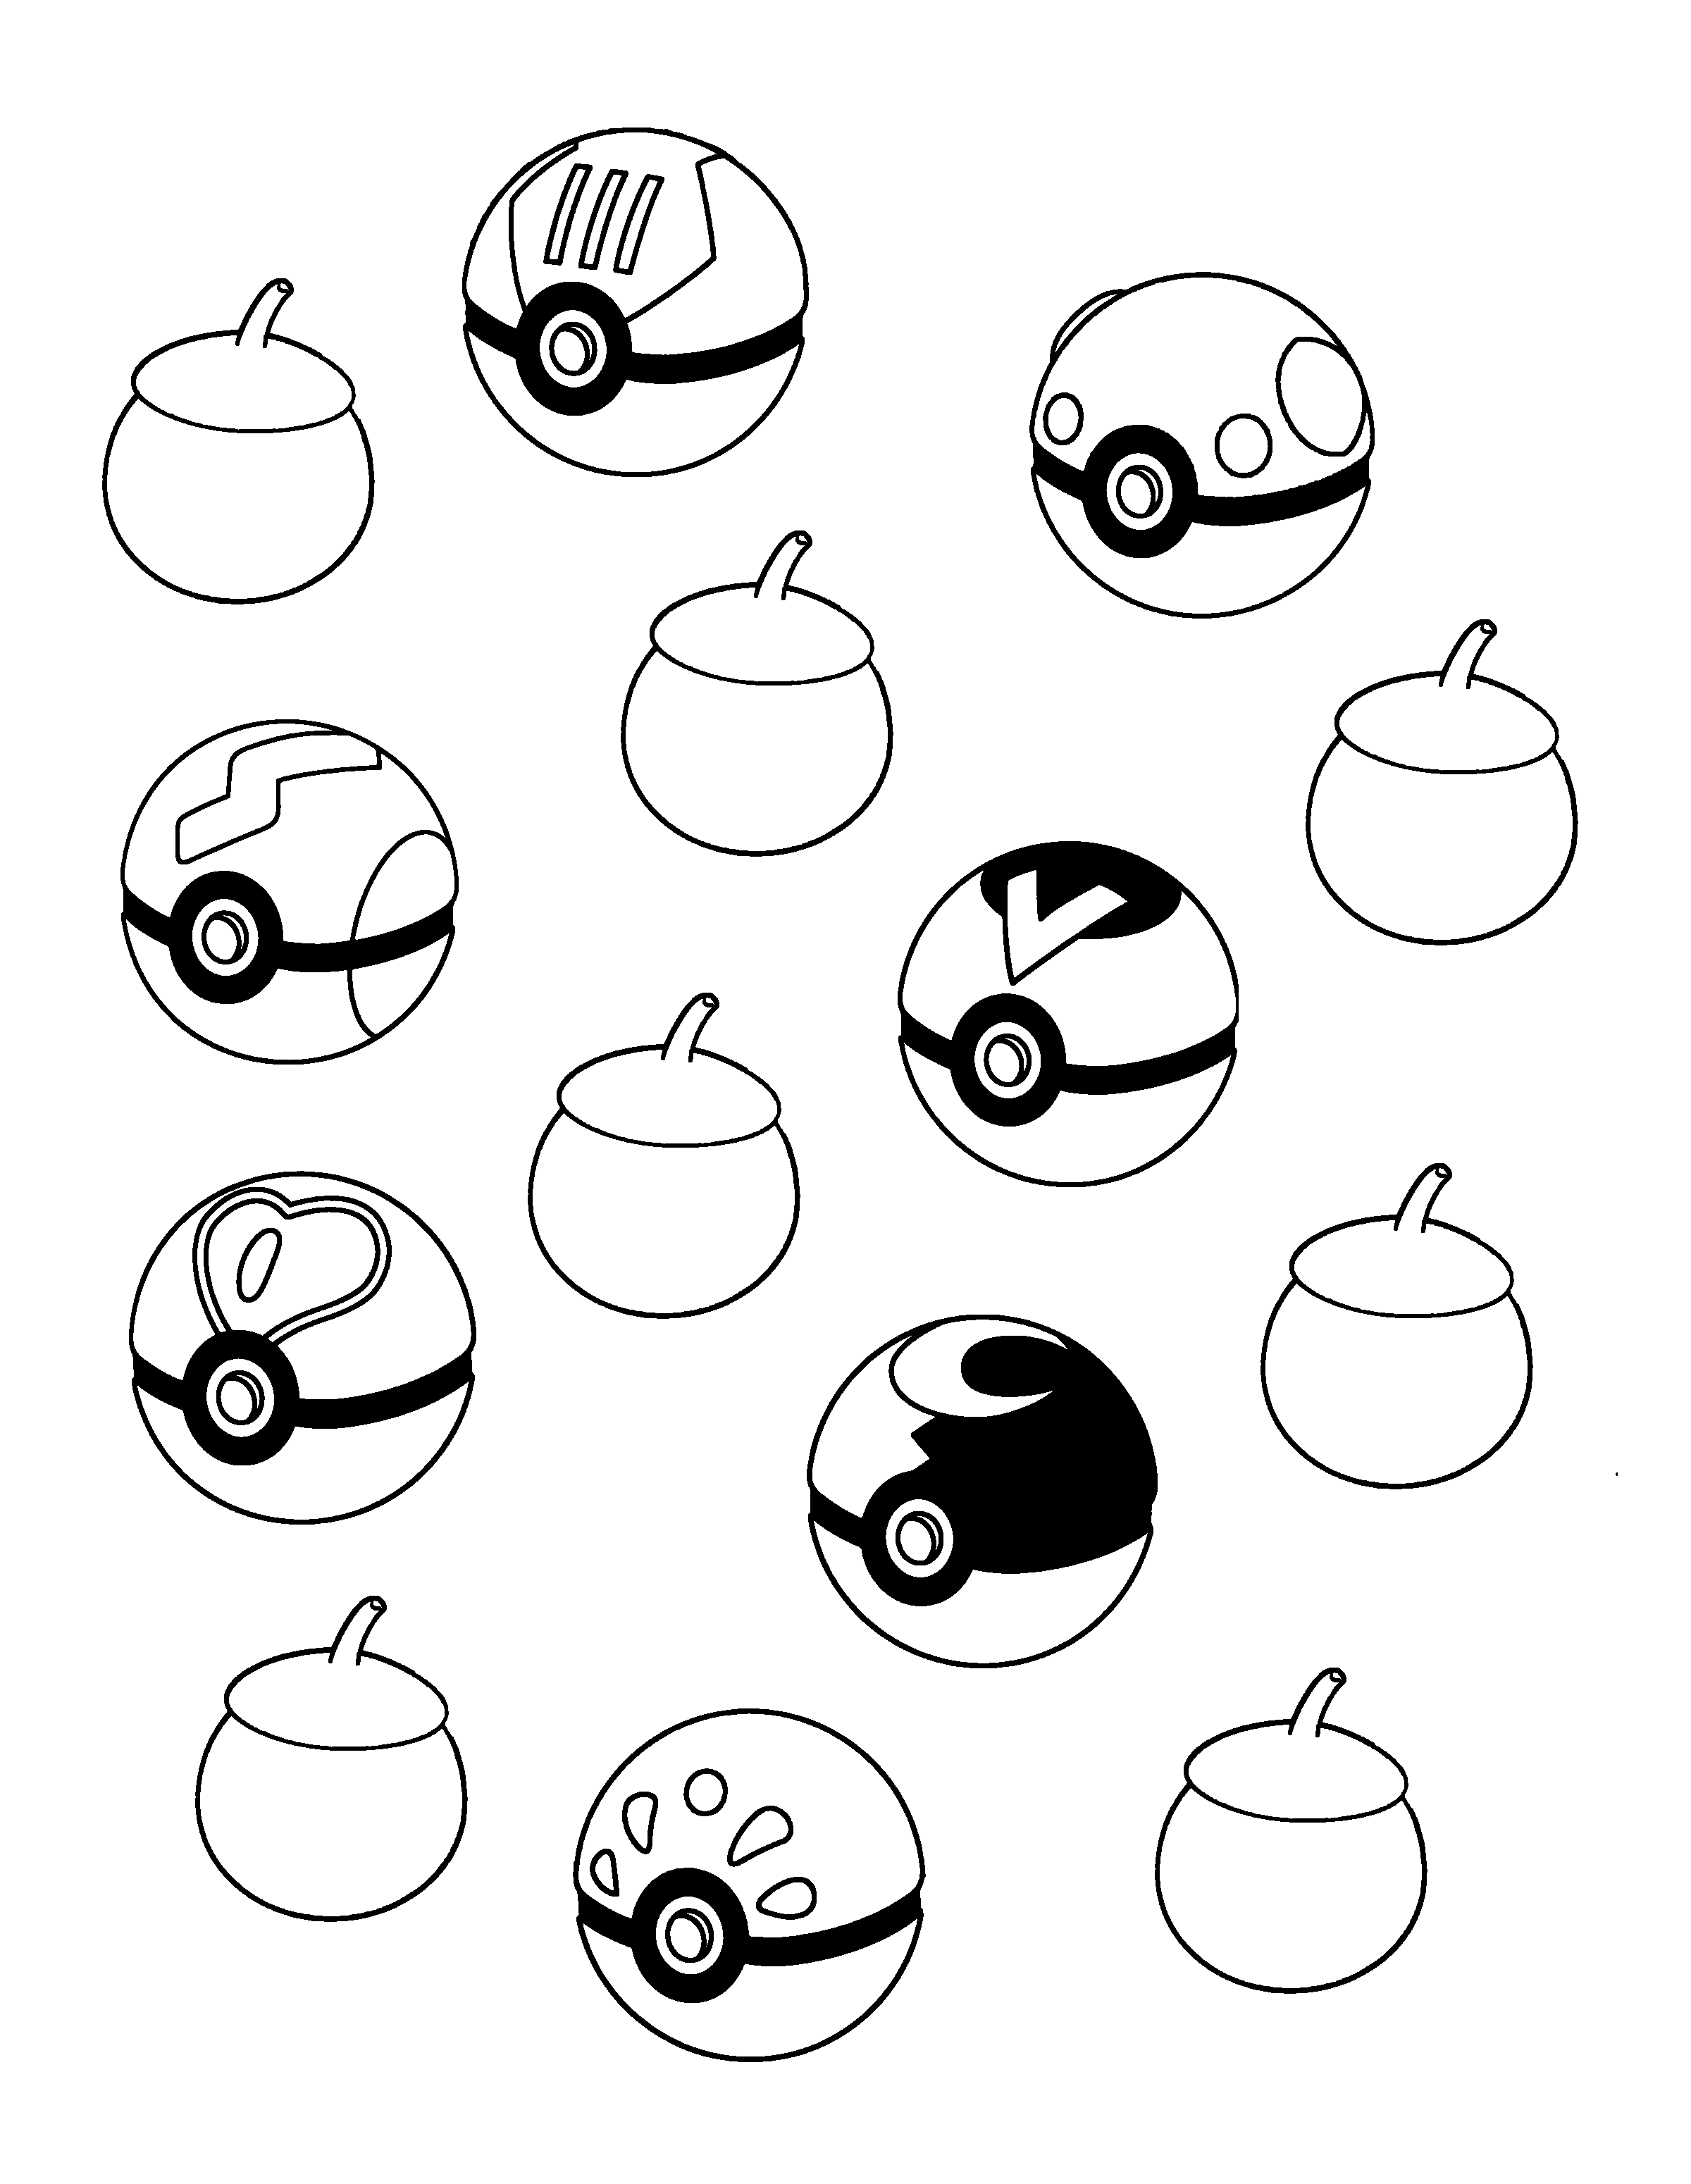 pokeball coloring pages Pokemon Pokeball Coloring Pages | ♡ Coloring Pages ♡ | Coloring  pokeball coloring pages